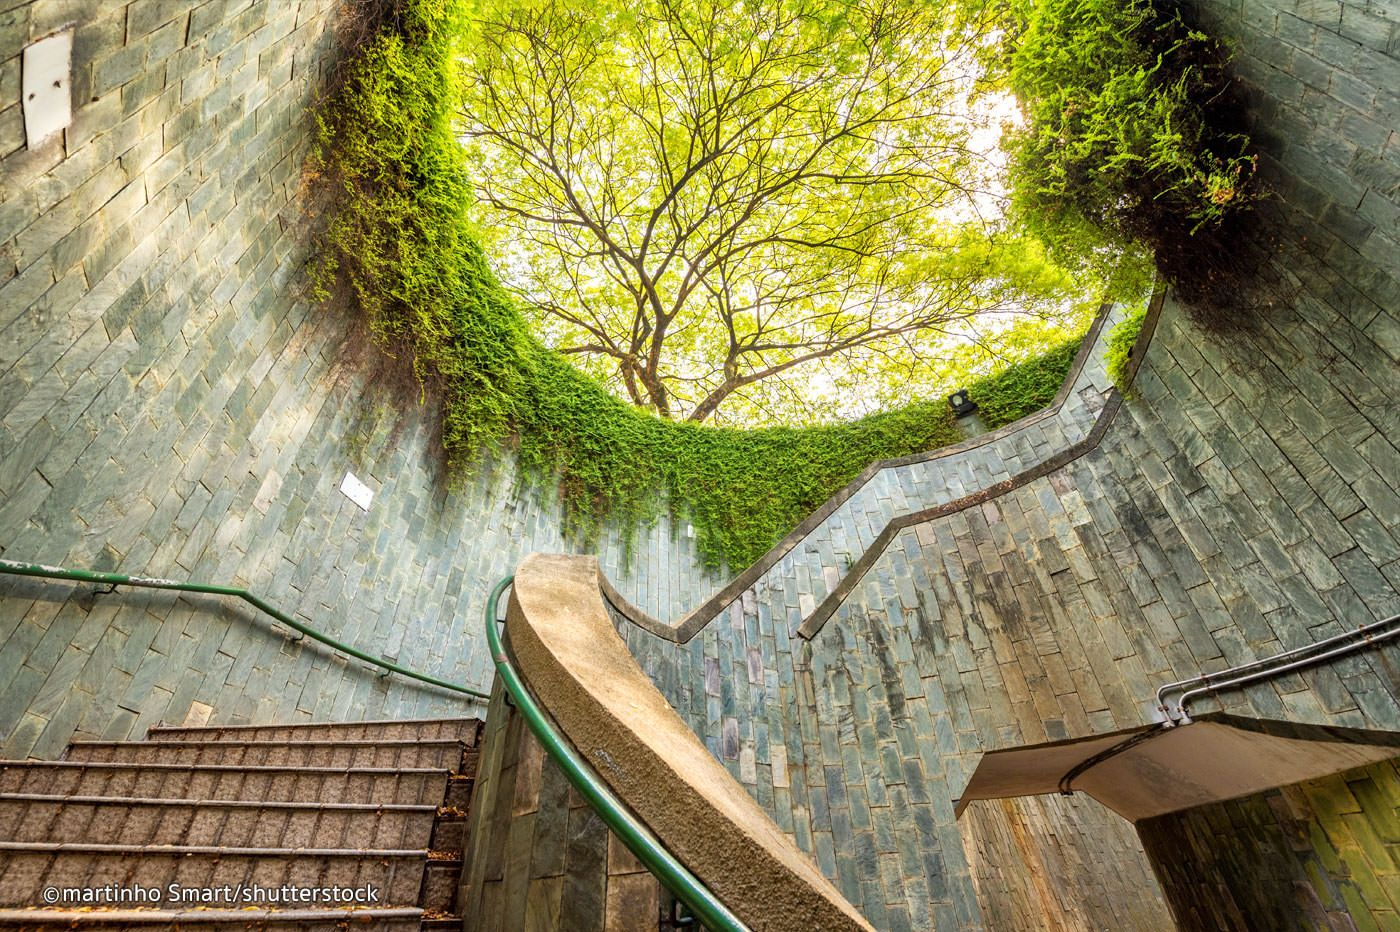 Fort Canning Park Singapore Historical Garden In The Heart Of The City Singapore Garden Nature Trail Cool Places To Visit